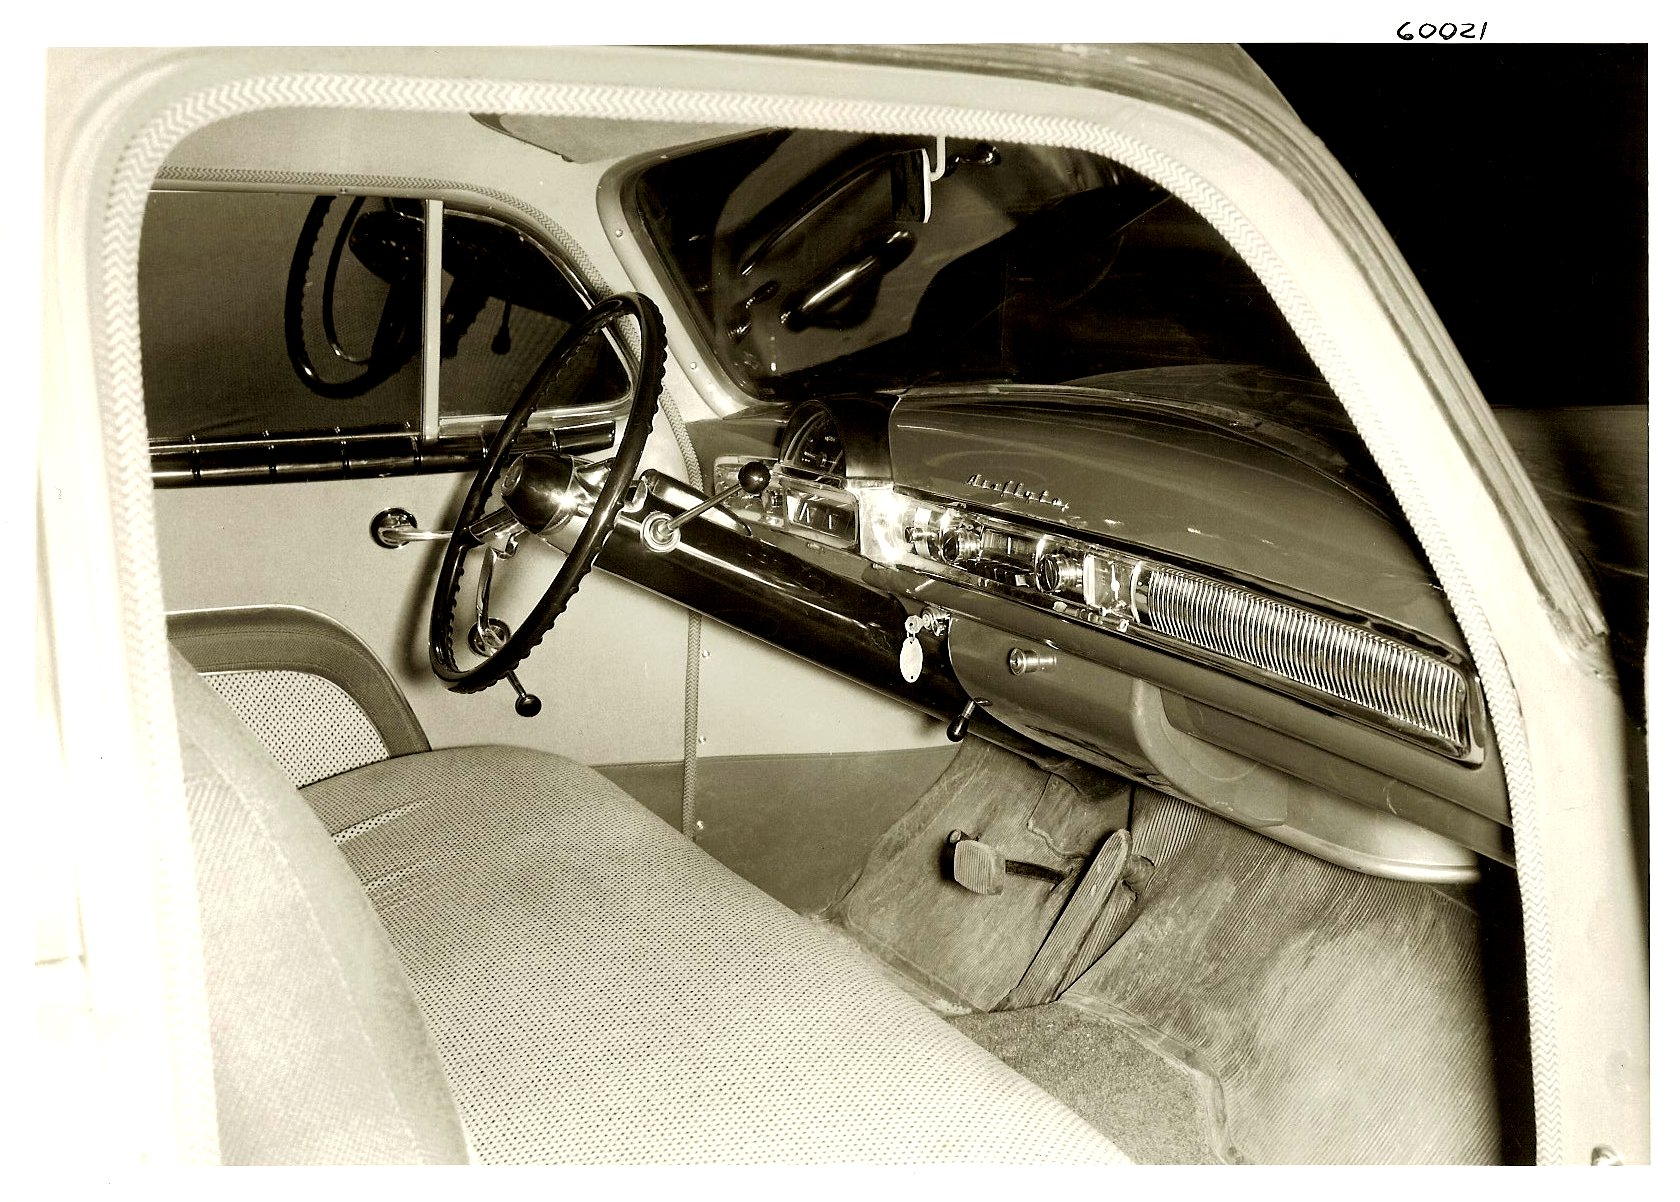 1951 NASH Dashboard view from passenger side. 10″x8″ Black & White photograph 60021